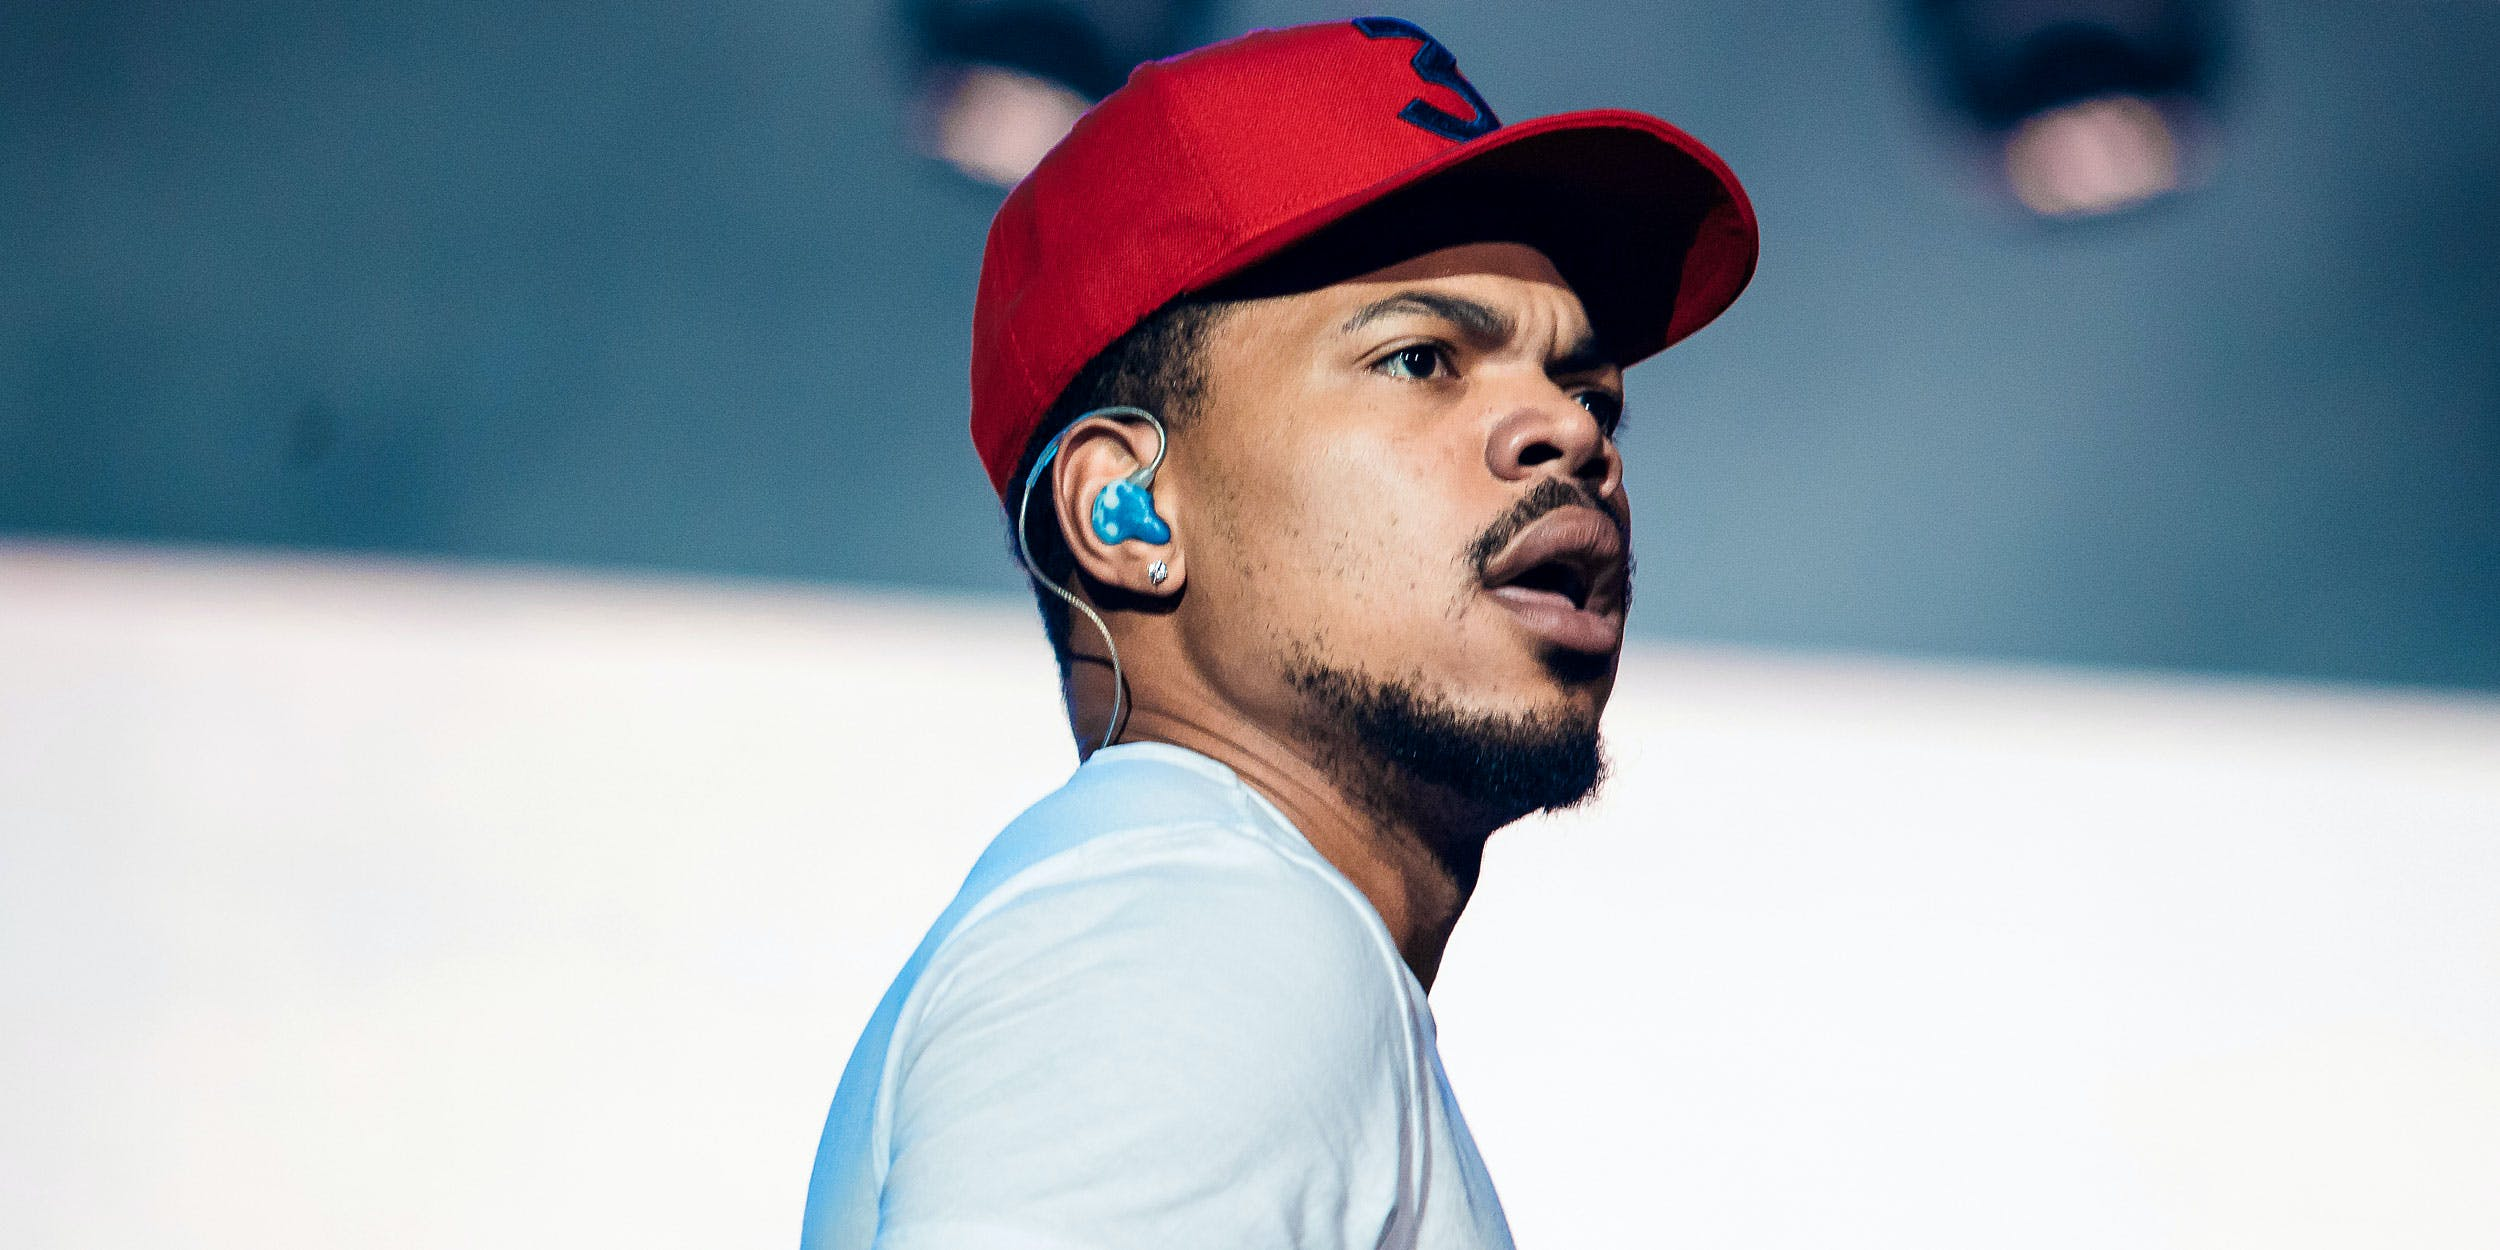 Chance the Rapper looks out at a crowd from the Lollapalooza stage in Brazil in March. Now he has his sight set on two new collaboration albums with Kanye West and Childish Gambino.